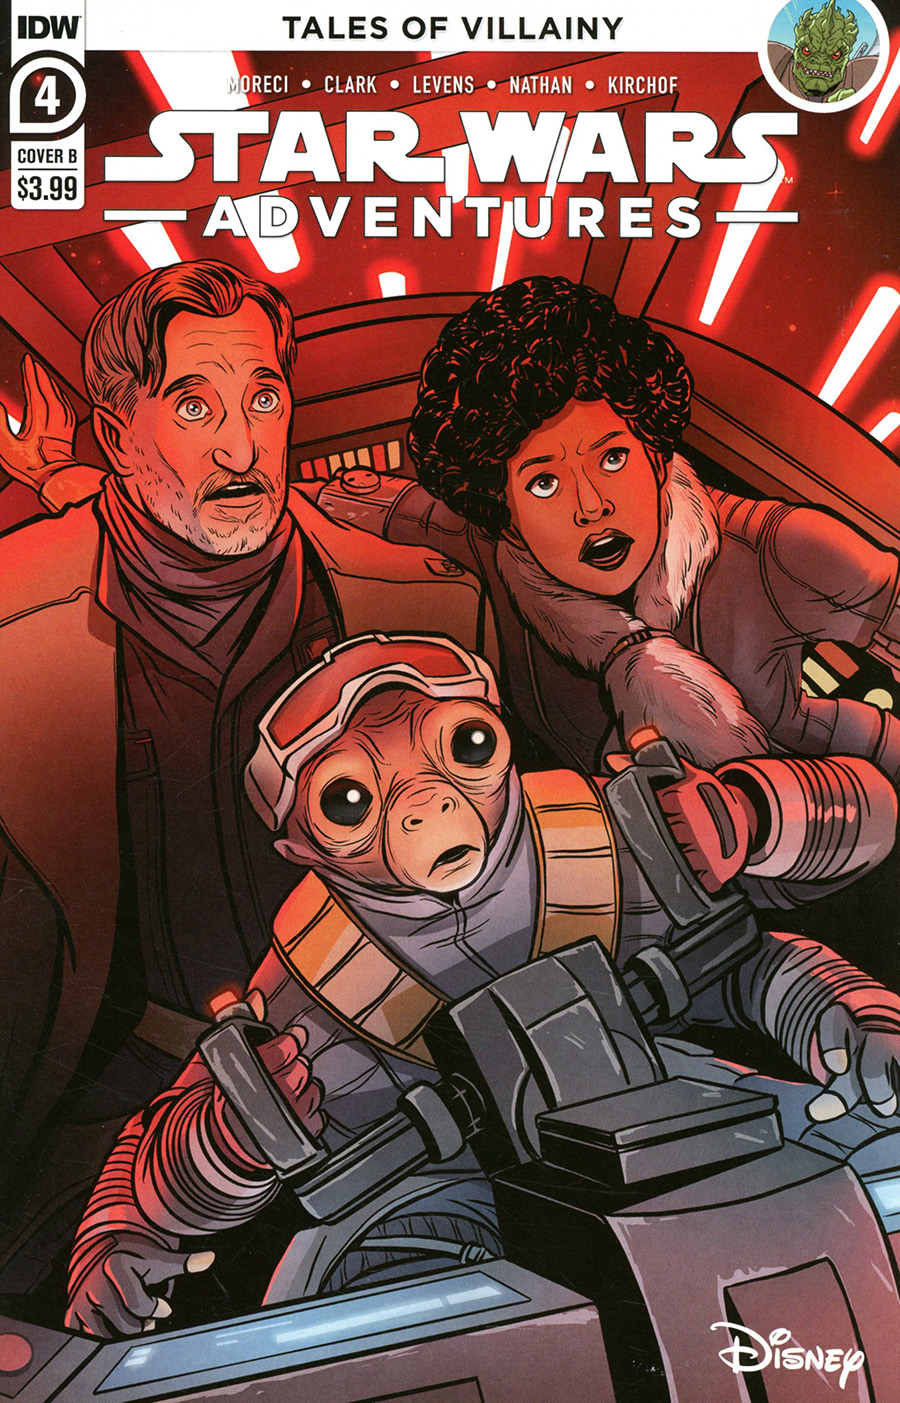 Star Wars Adventures Vol 2 #4 Cover B Variant Yael Nathan Cover